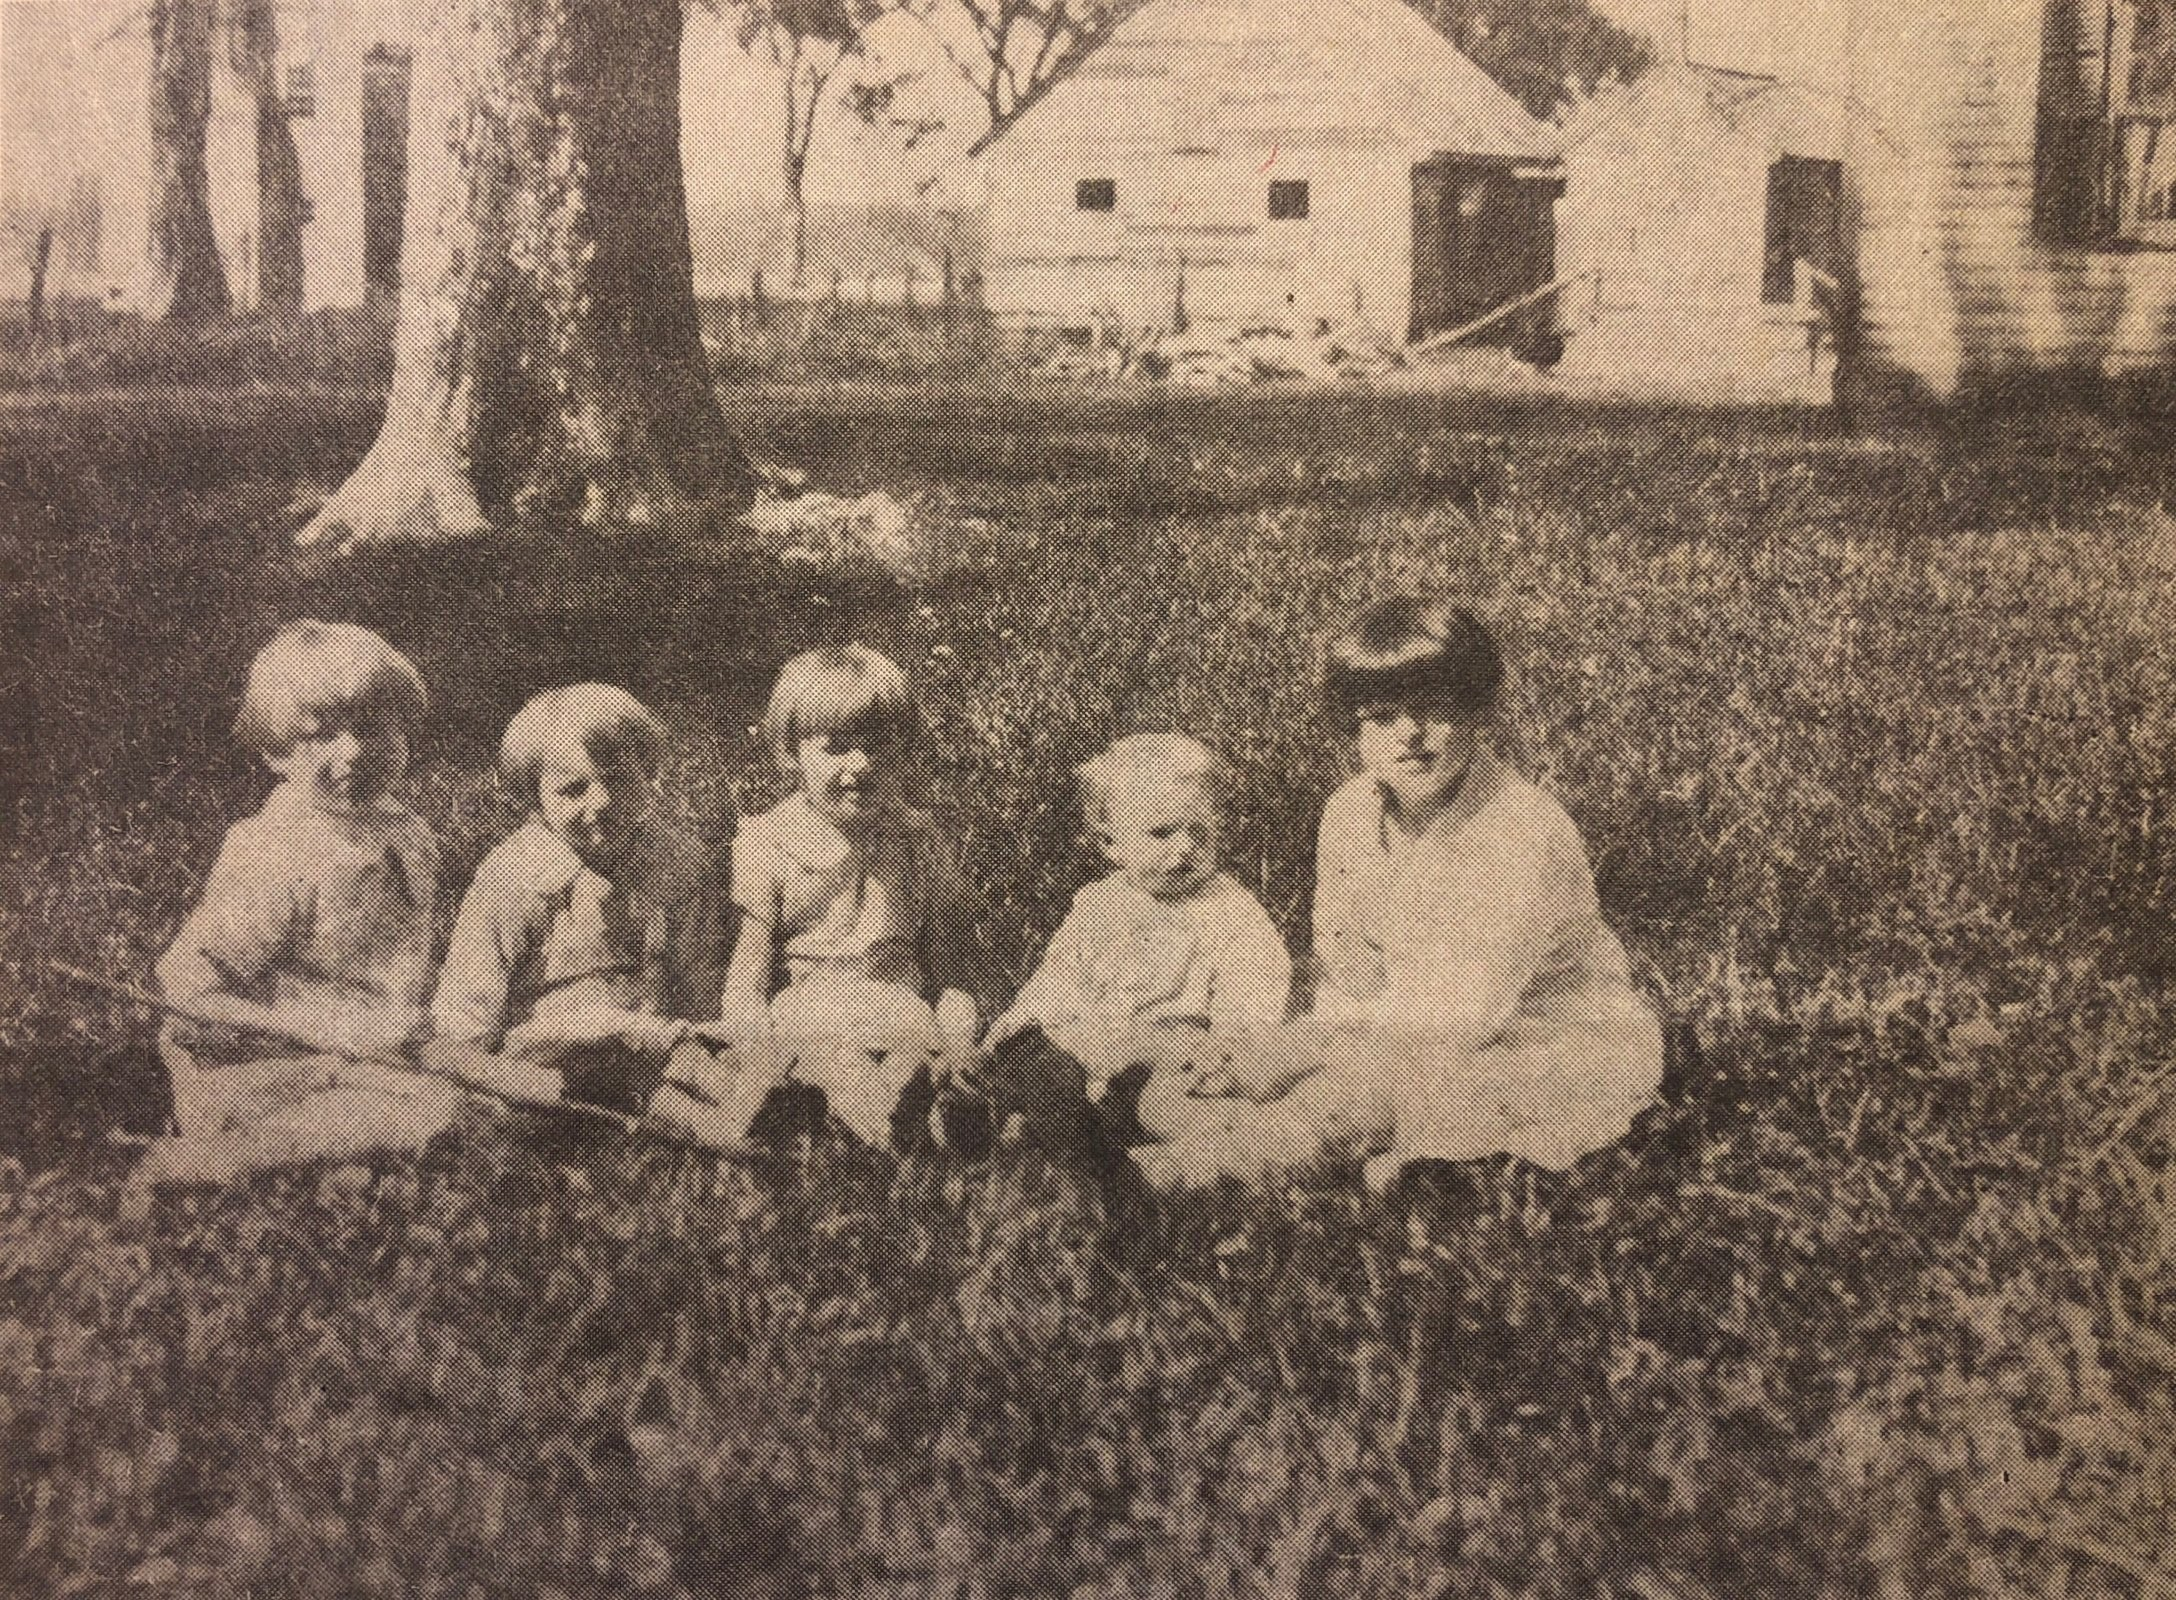 c. 1929 photo of the Wood House in the center background